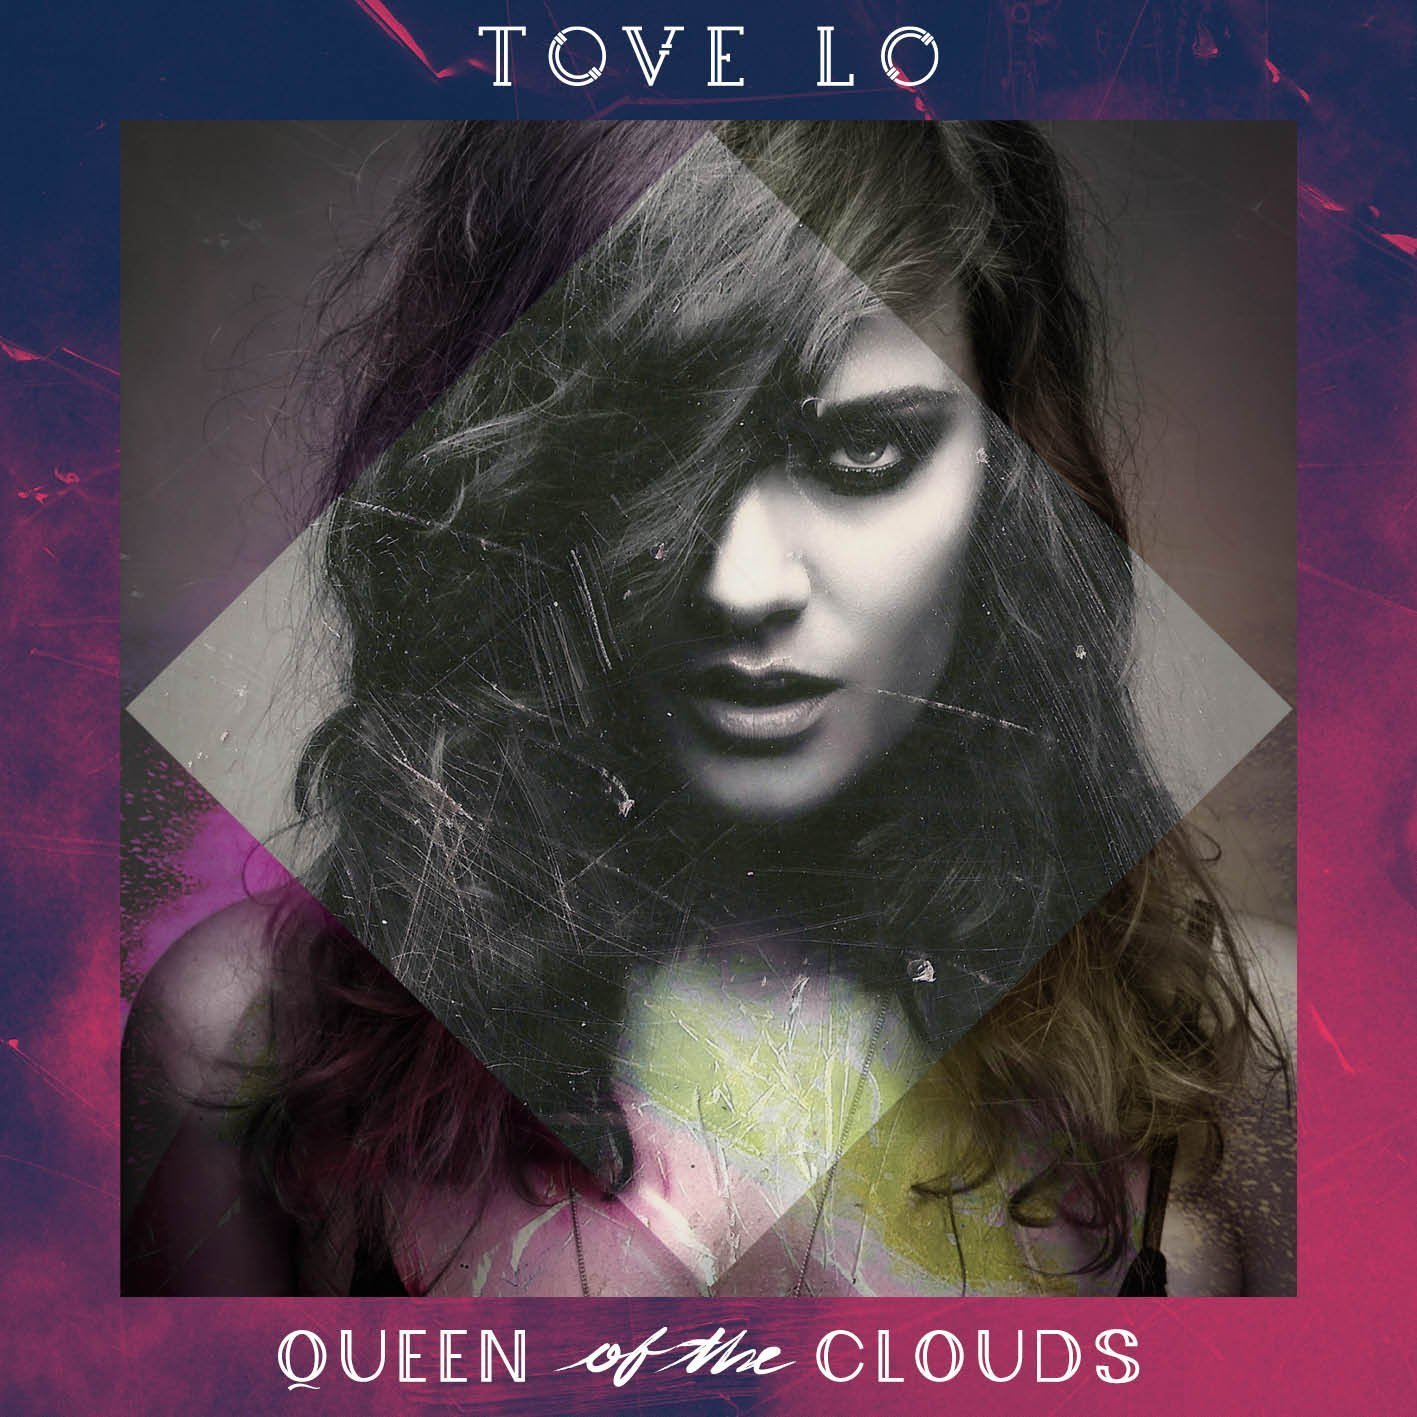 Queen Of The Clouds by Tove Lo image